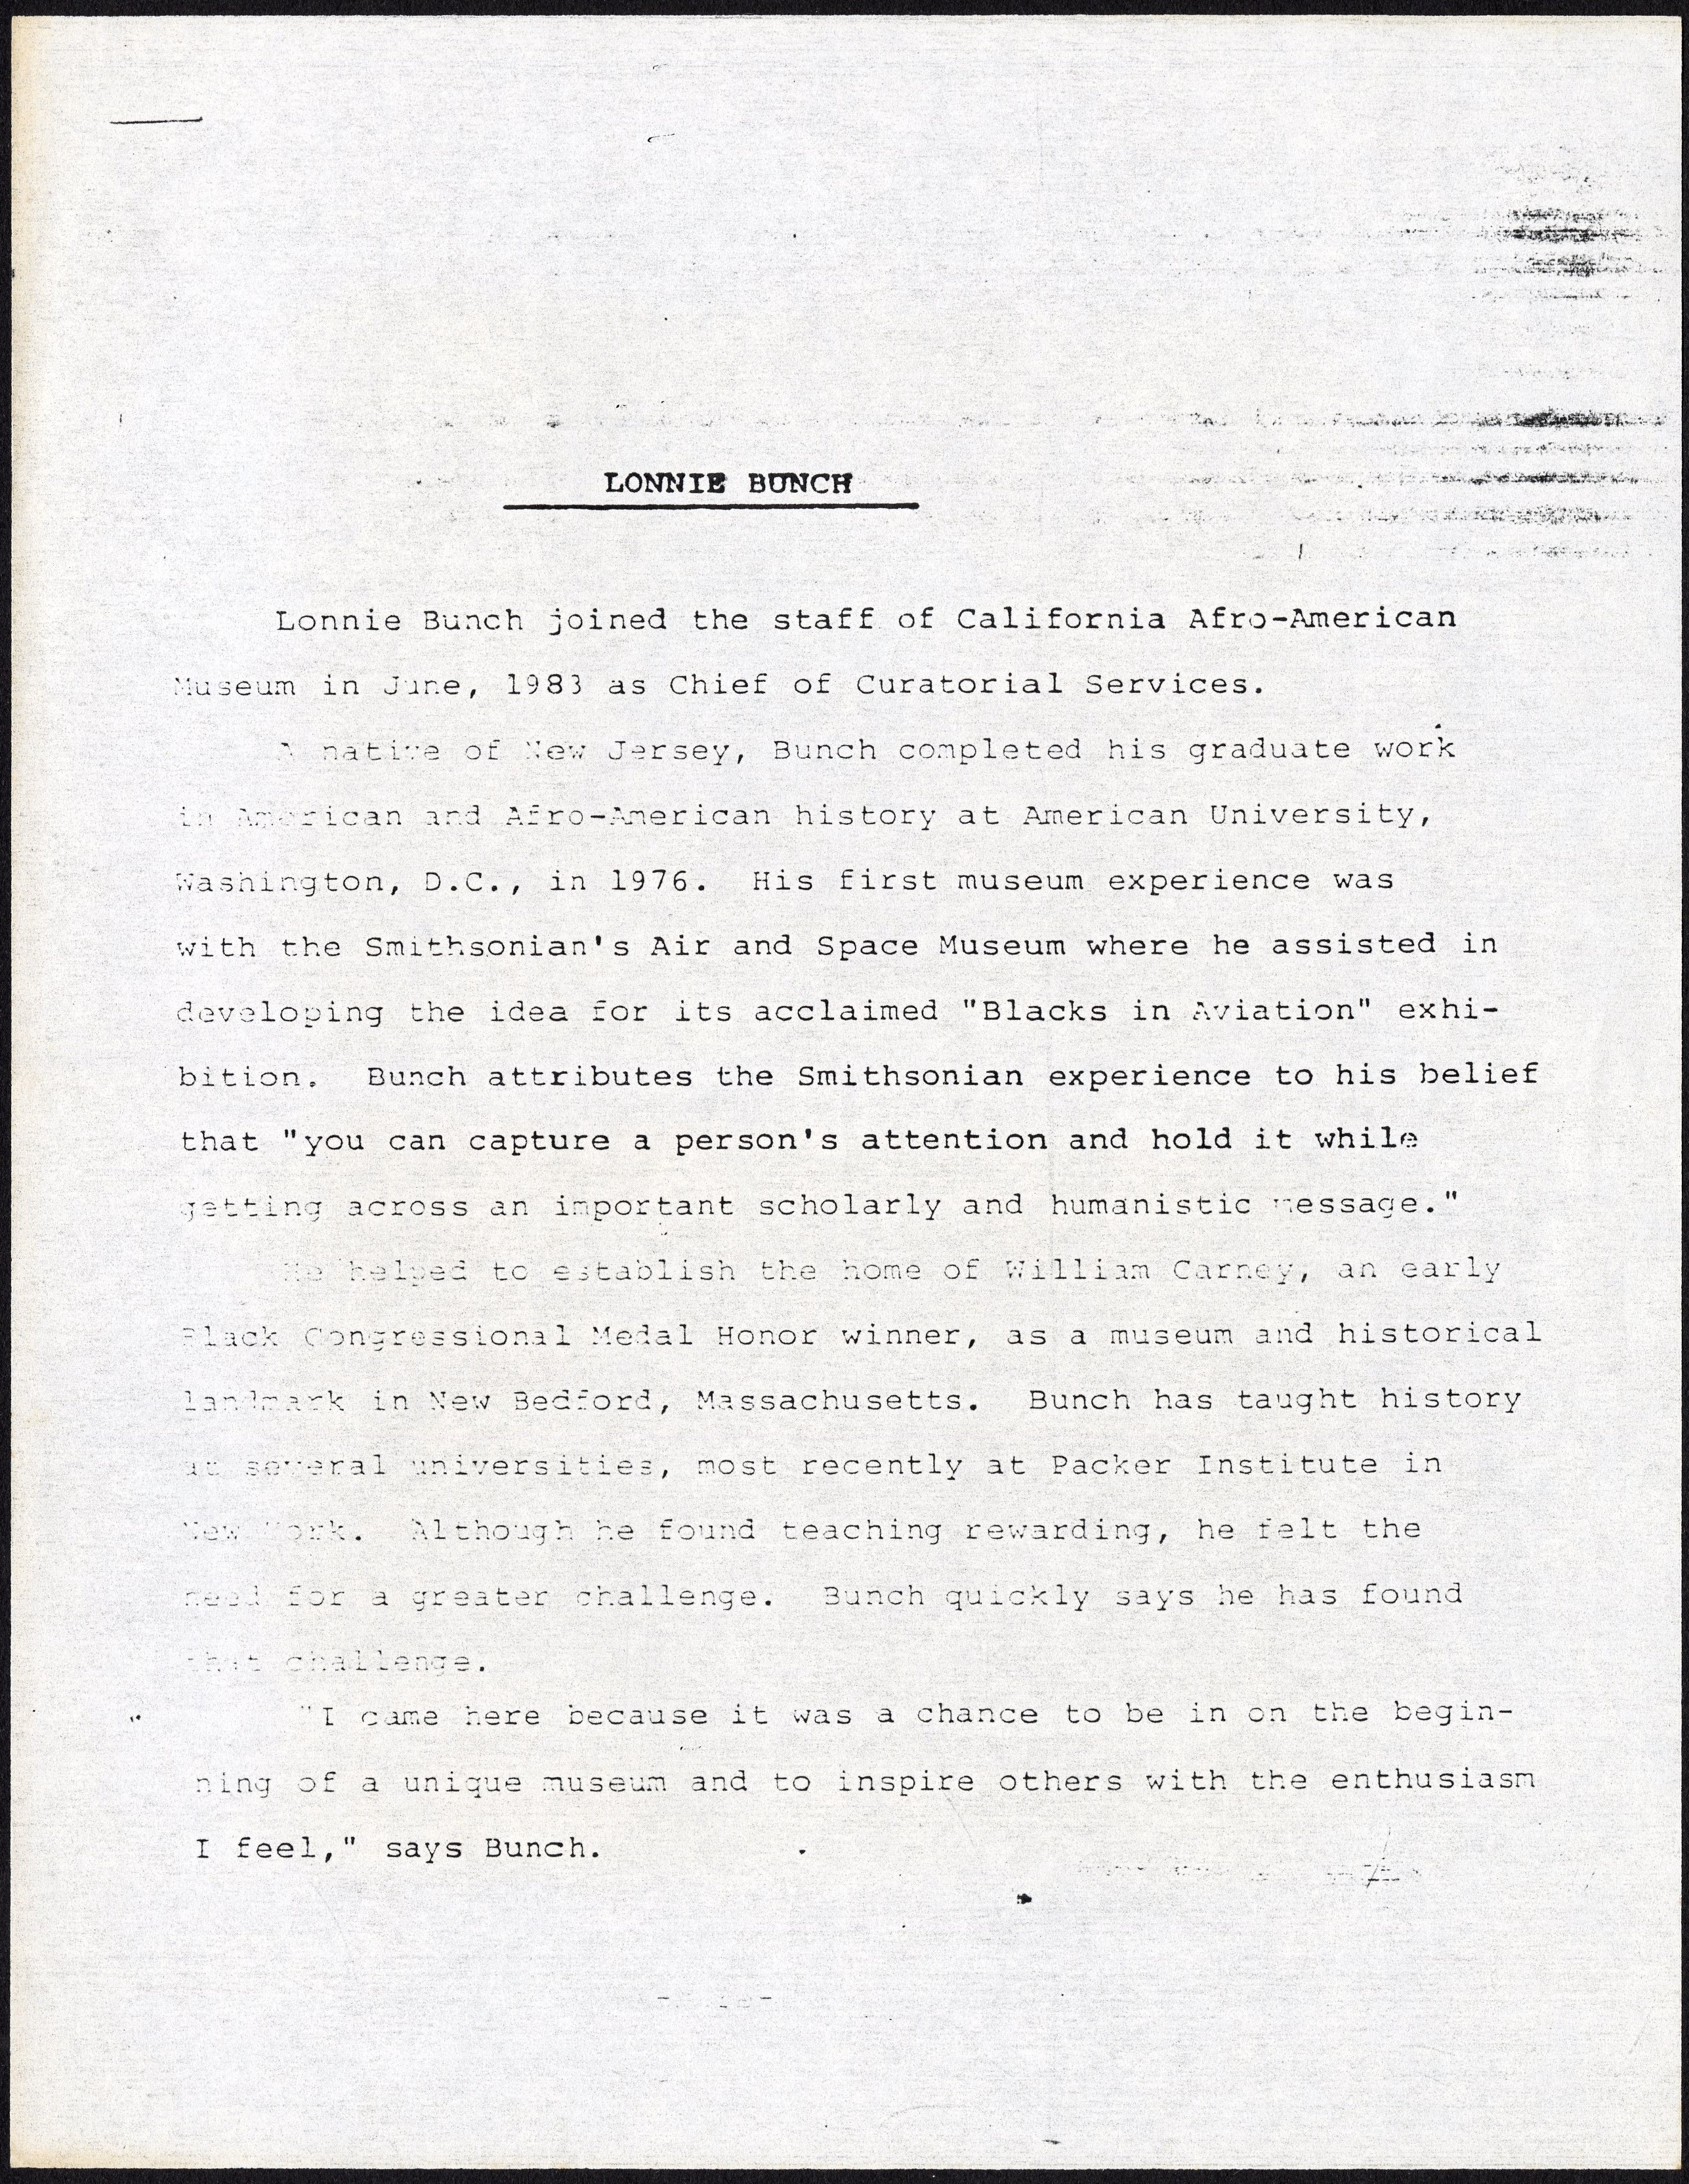 Press Release - Lonnie G. Bunch - California Afro-American Museum, 1983, page 1. Accession 19-200: L